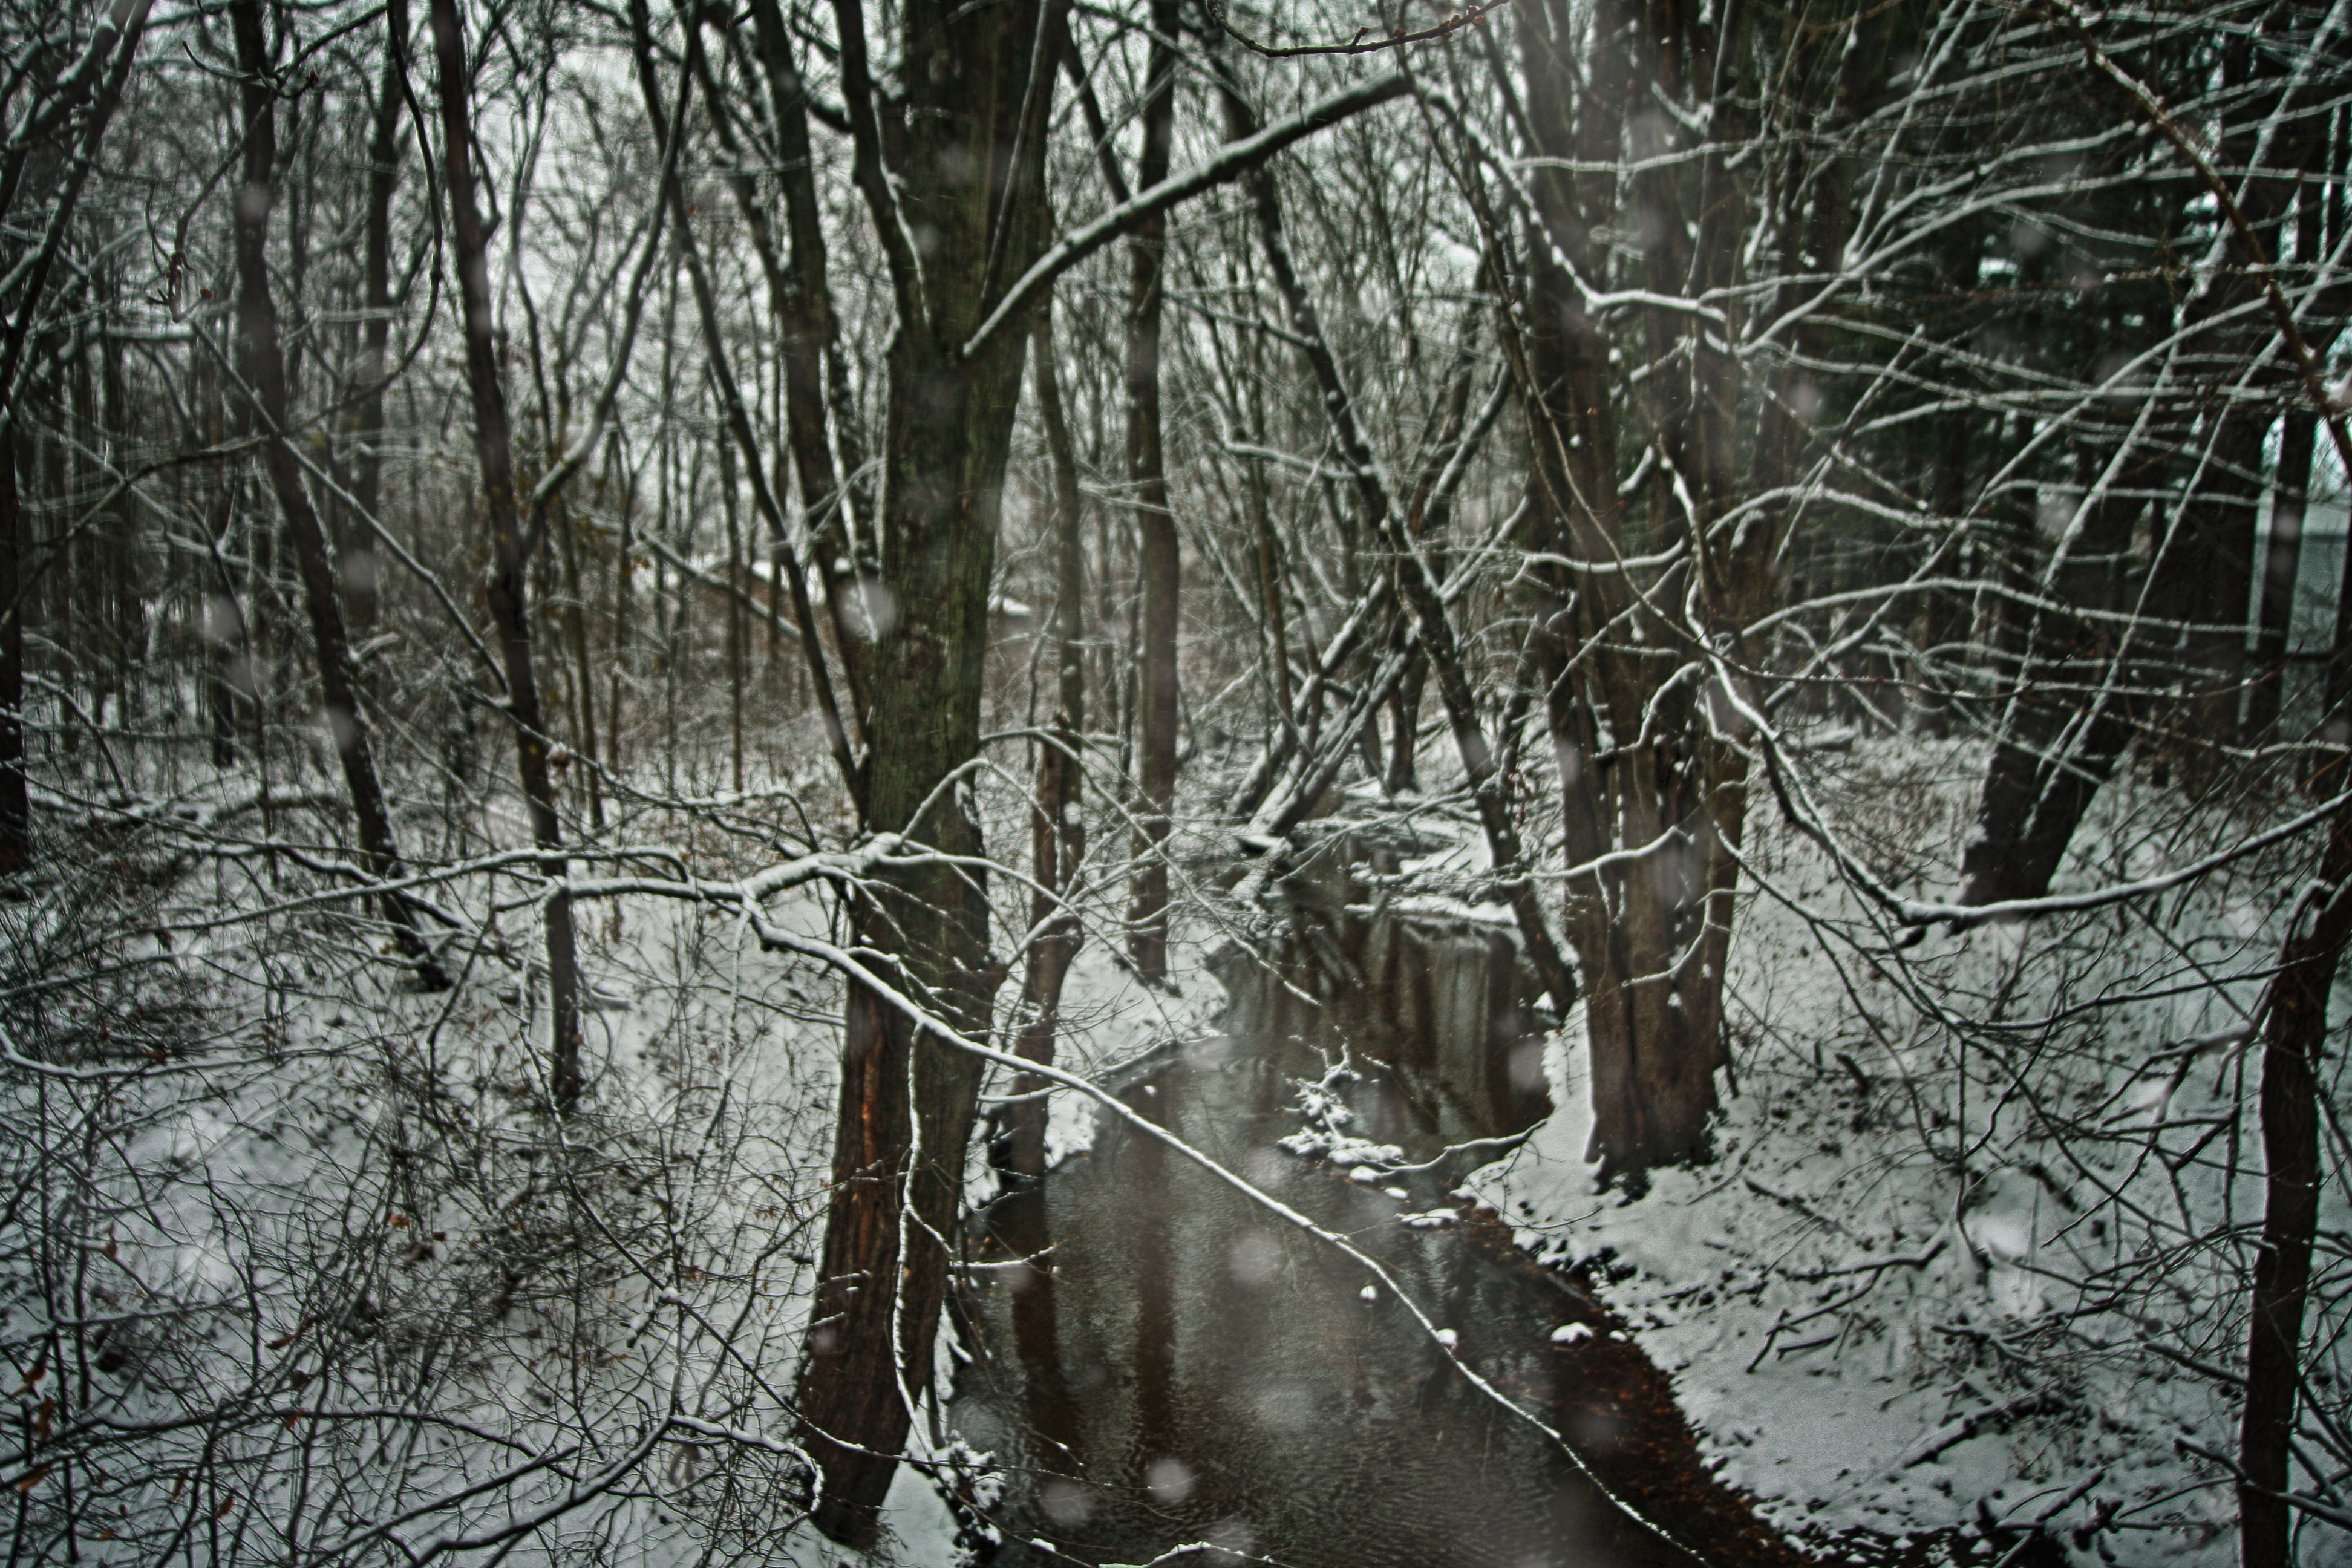 Snowy creek off of County Line Road in Michigan City, Indiana.